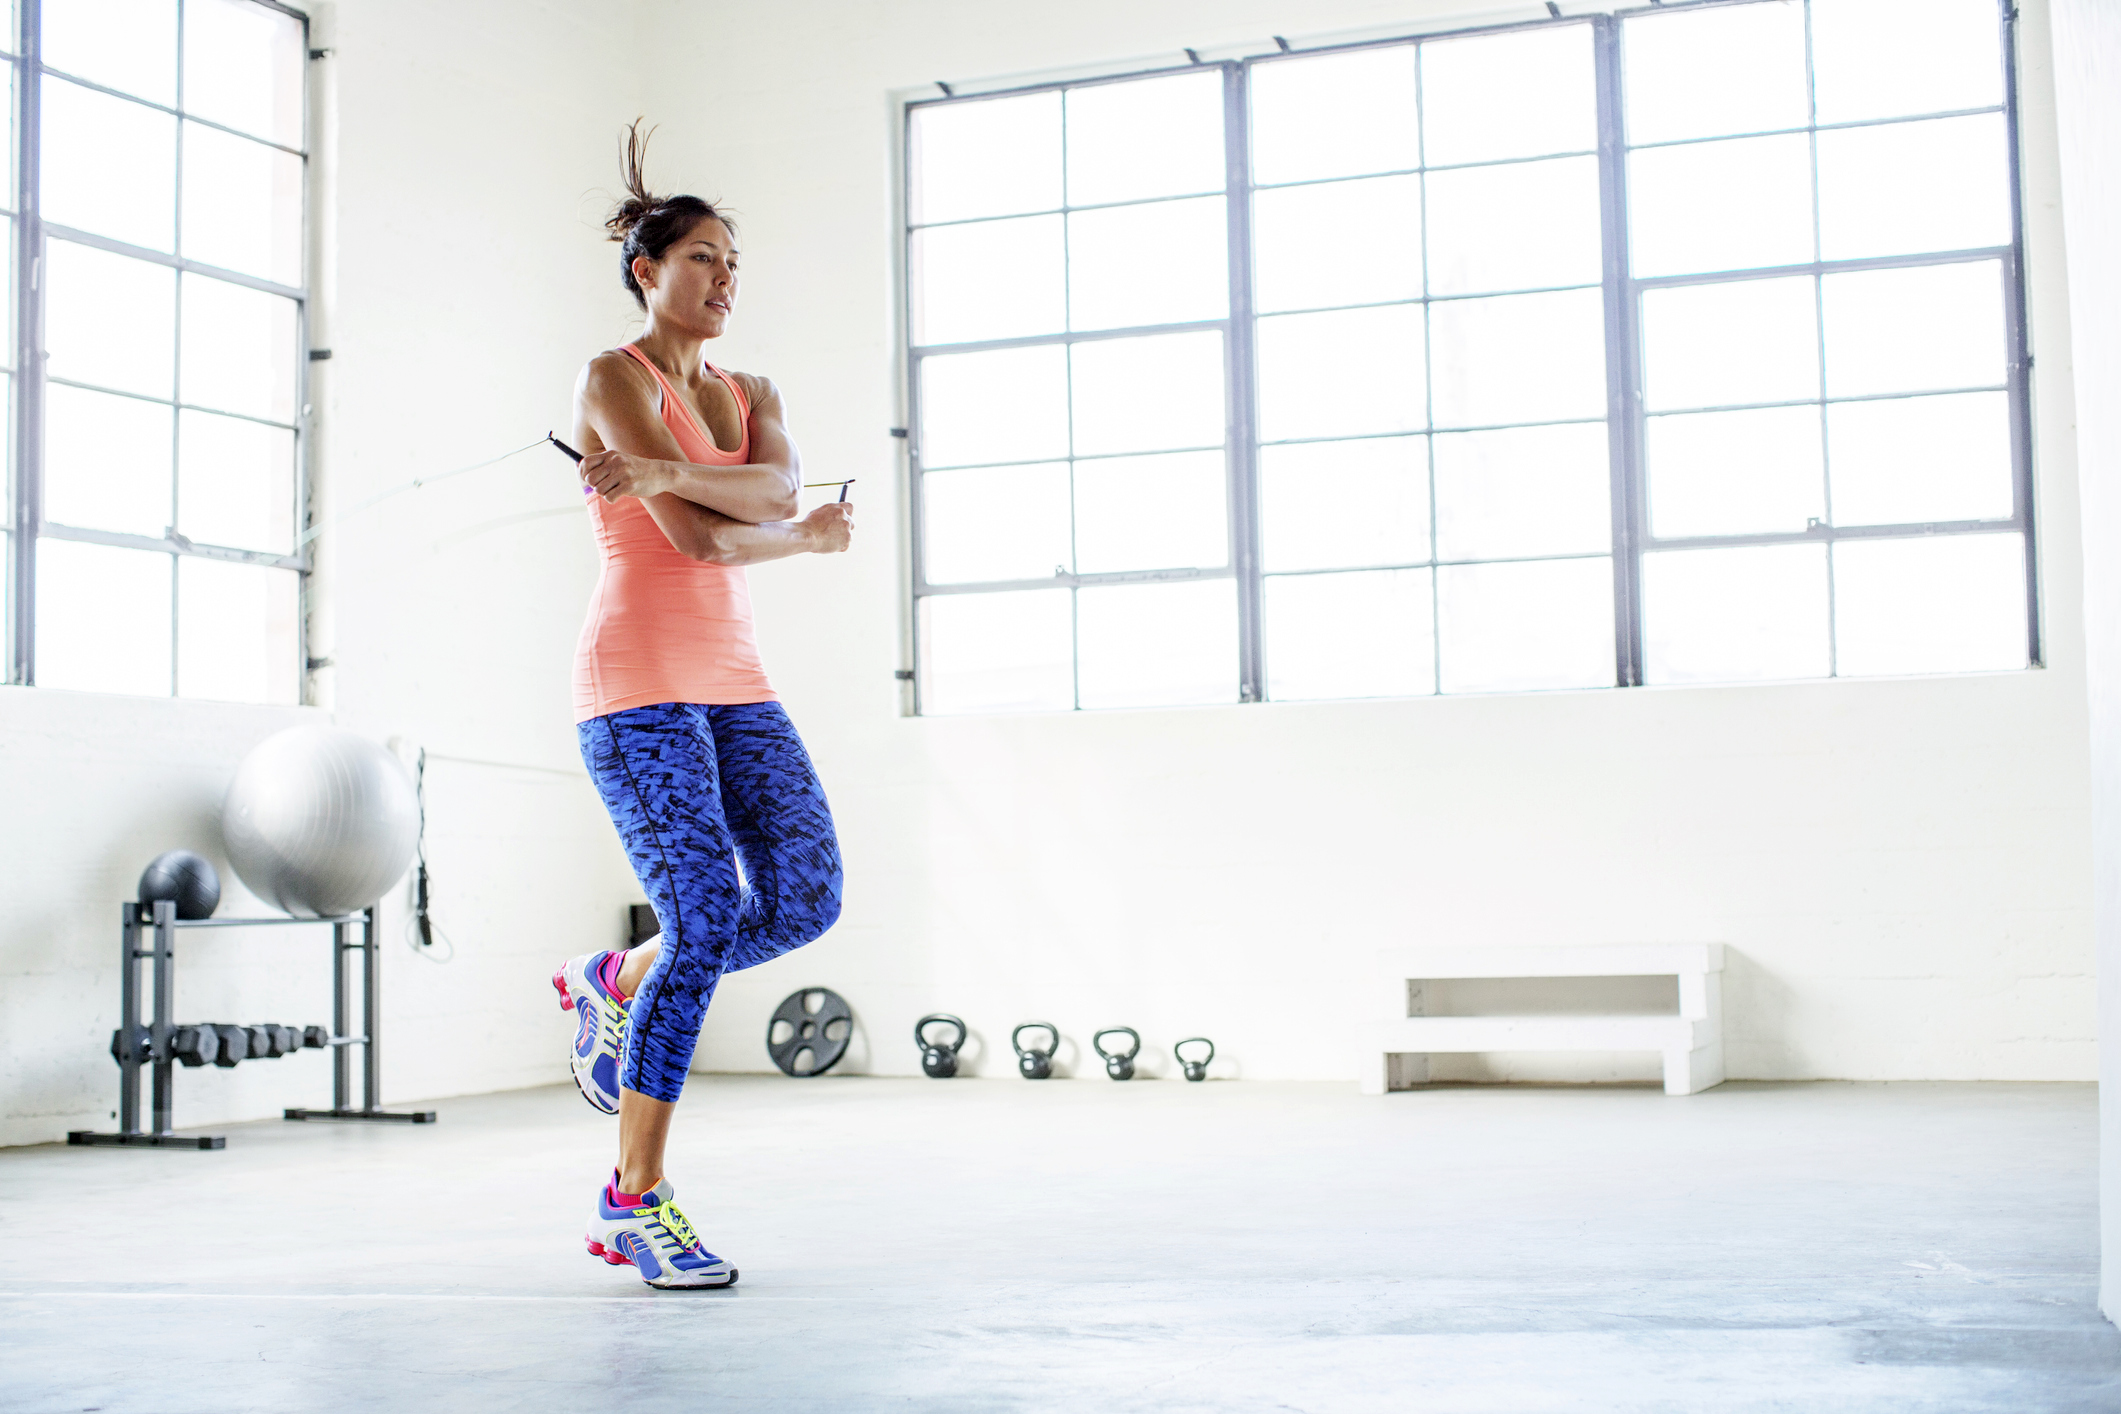 What are the best exercises for weight loss?